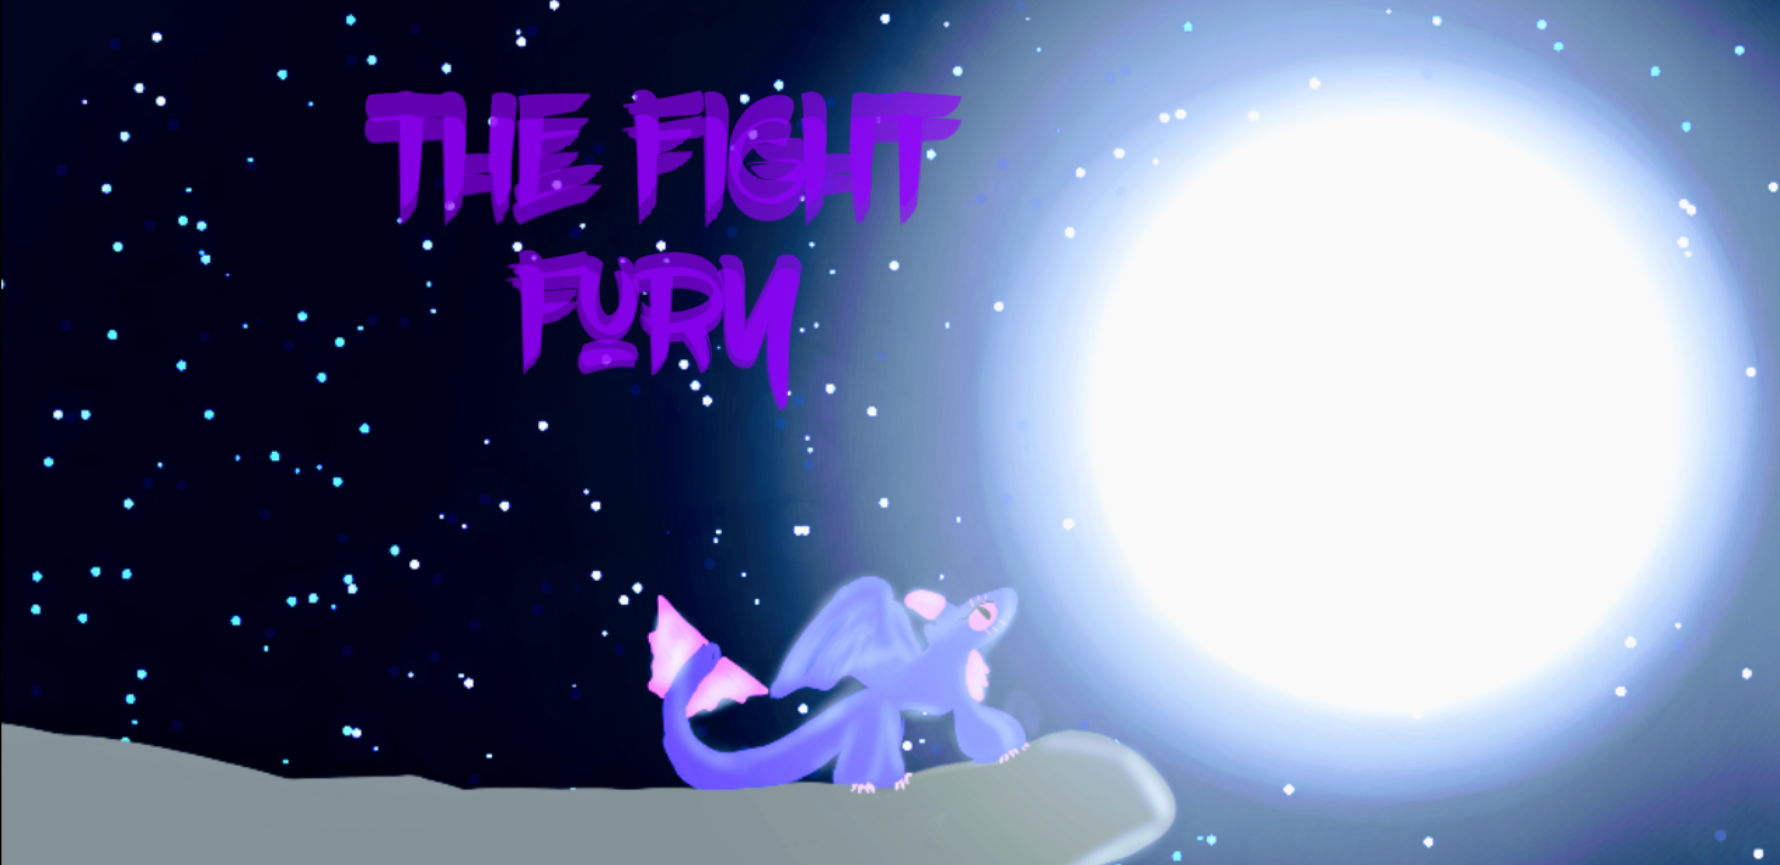 The Fight Fury